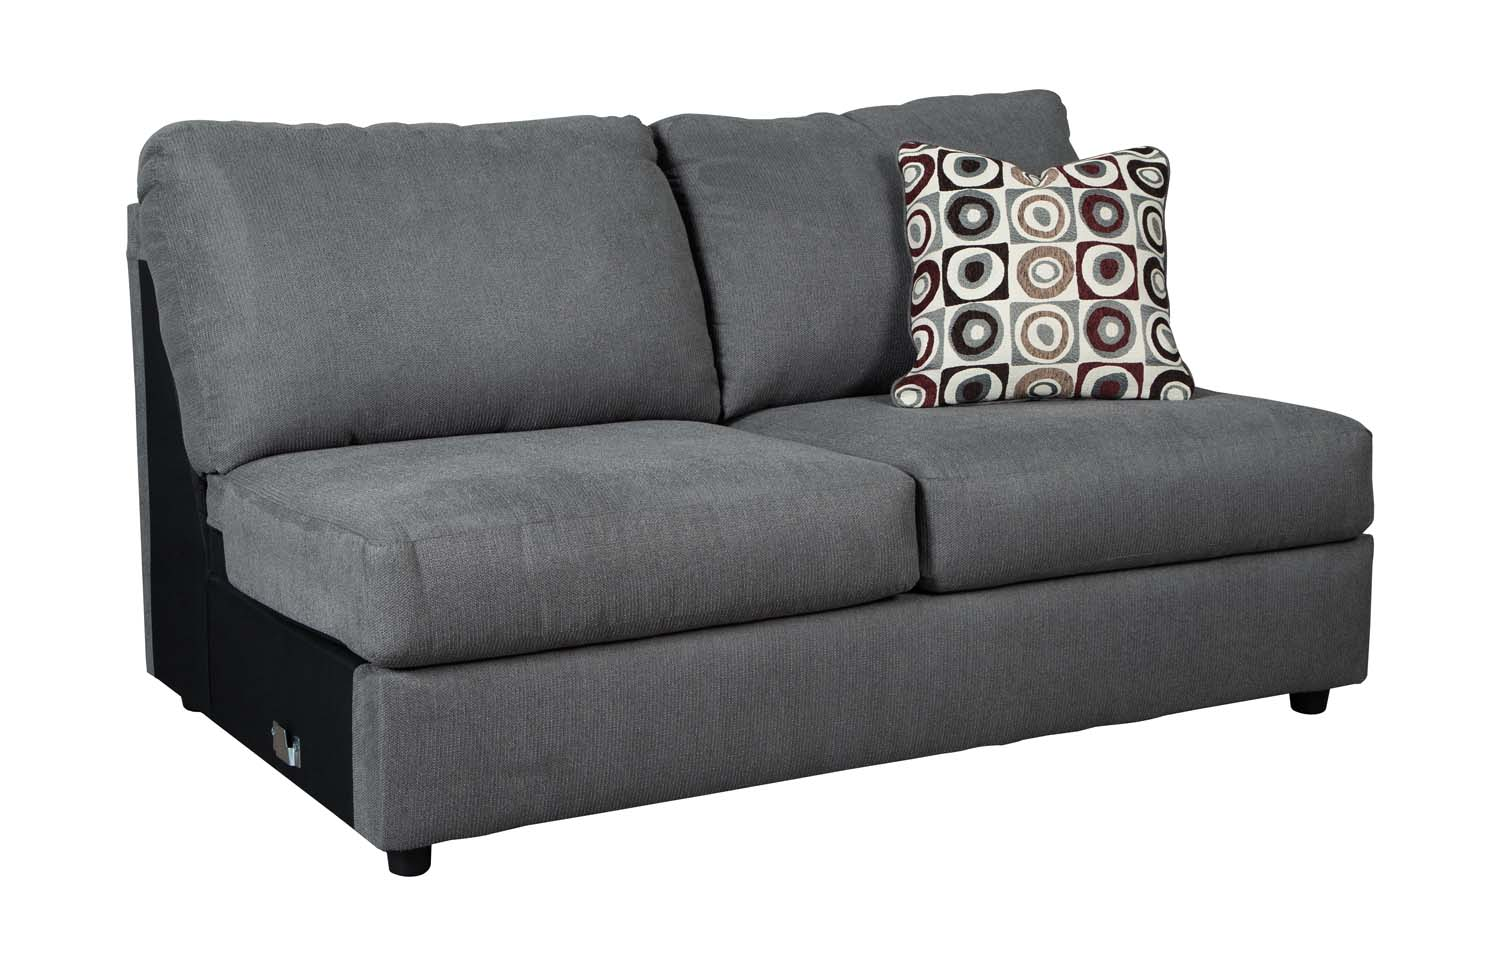 Ashley Furniture Armless Loveseat